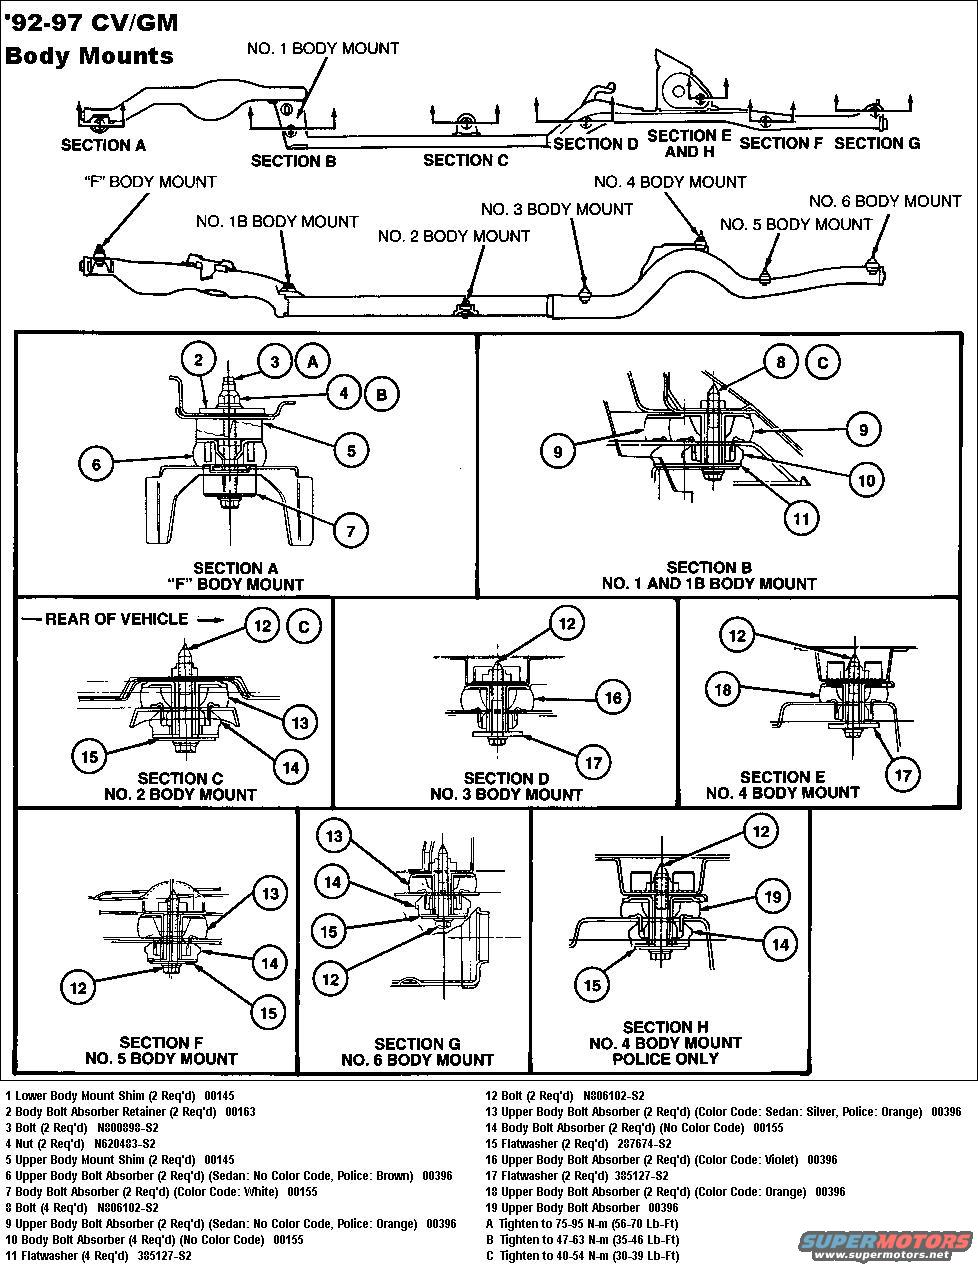 2008 Ford F350 Cargurus Wiring Source E350 Fuse Box Diagram F250 Together With Luxury 2010